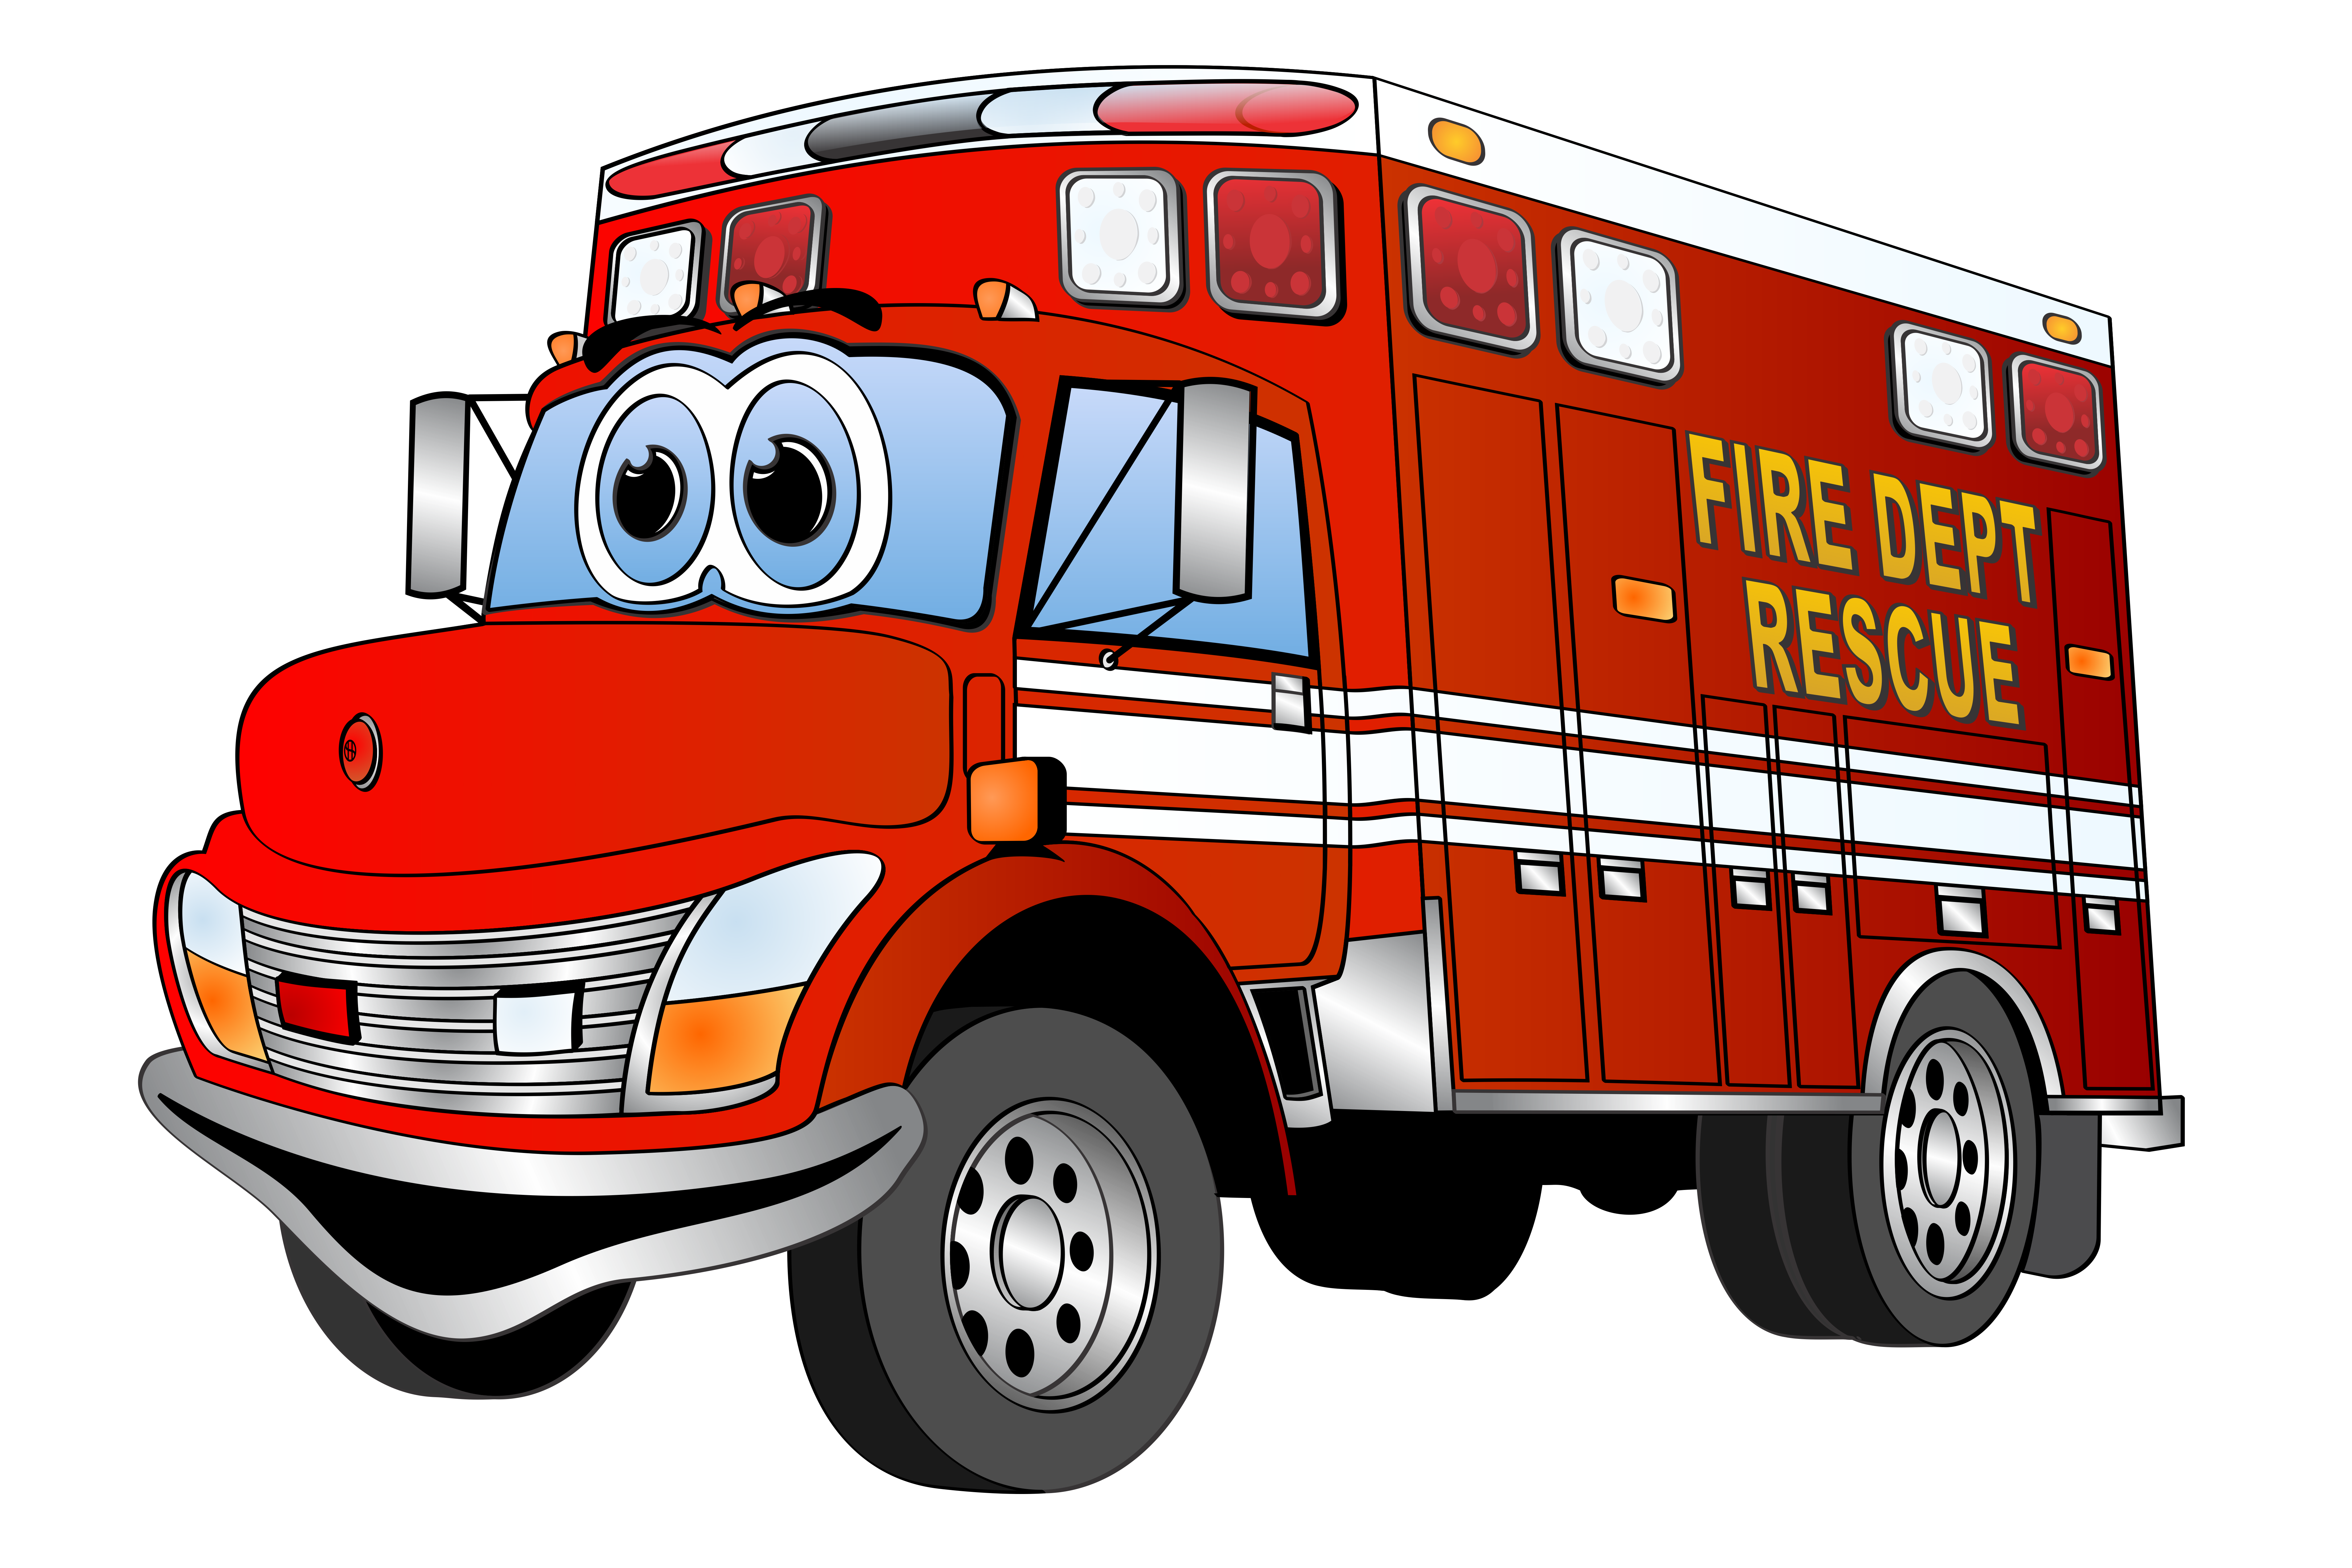 Firetruck vector animated. Collection of free